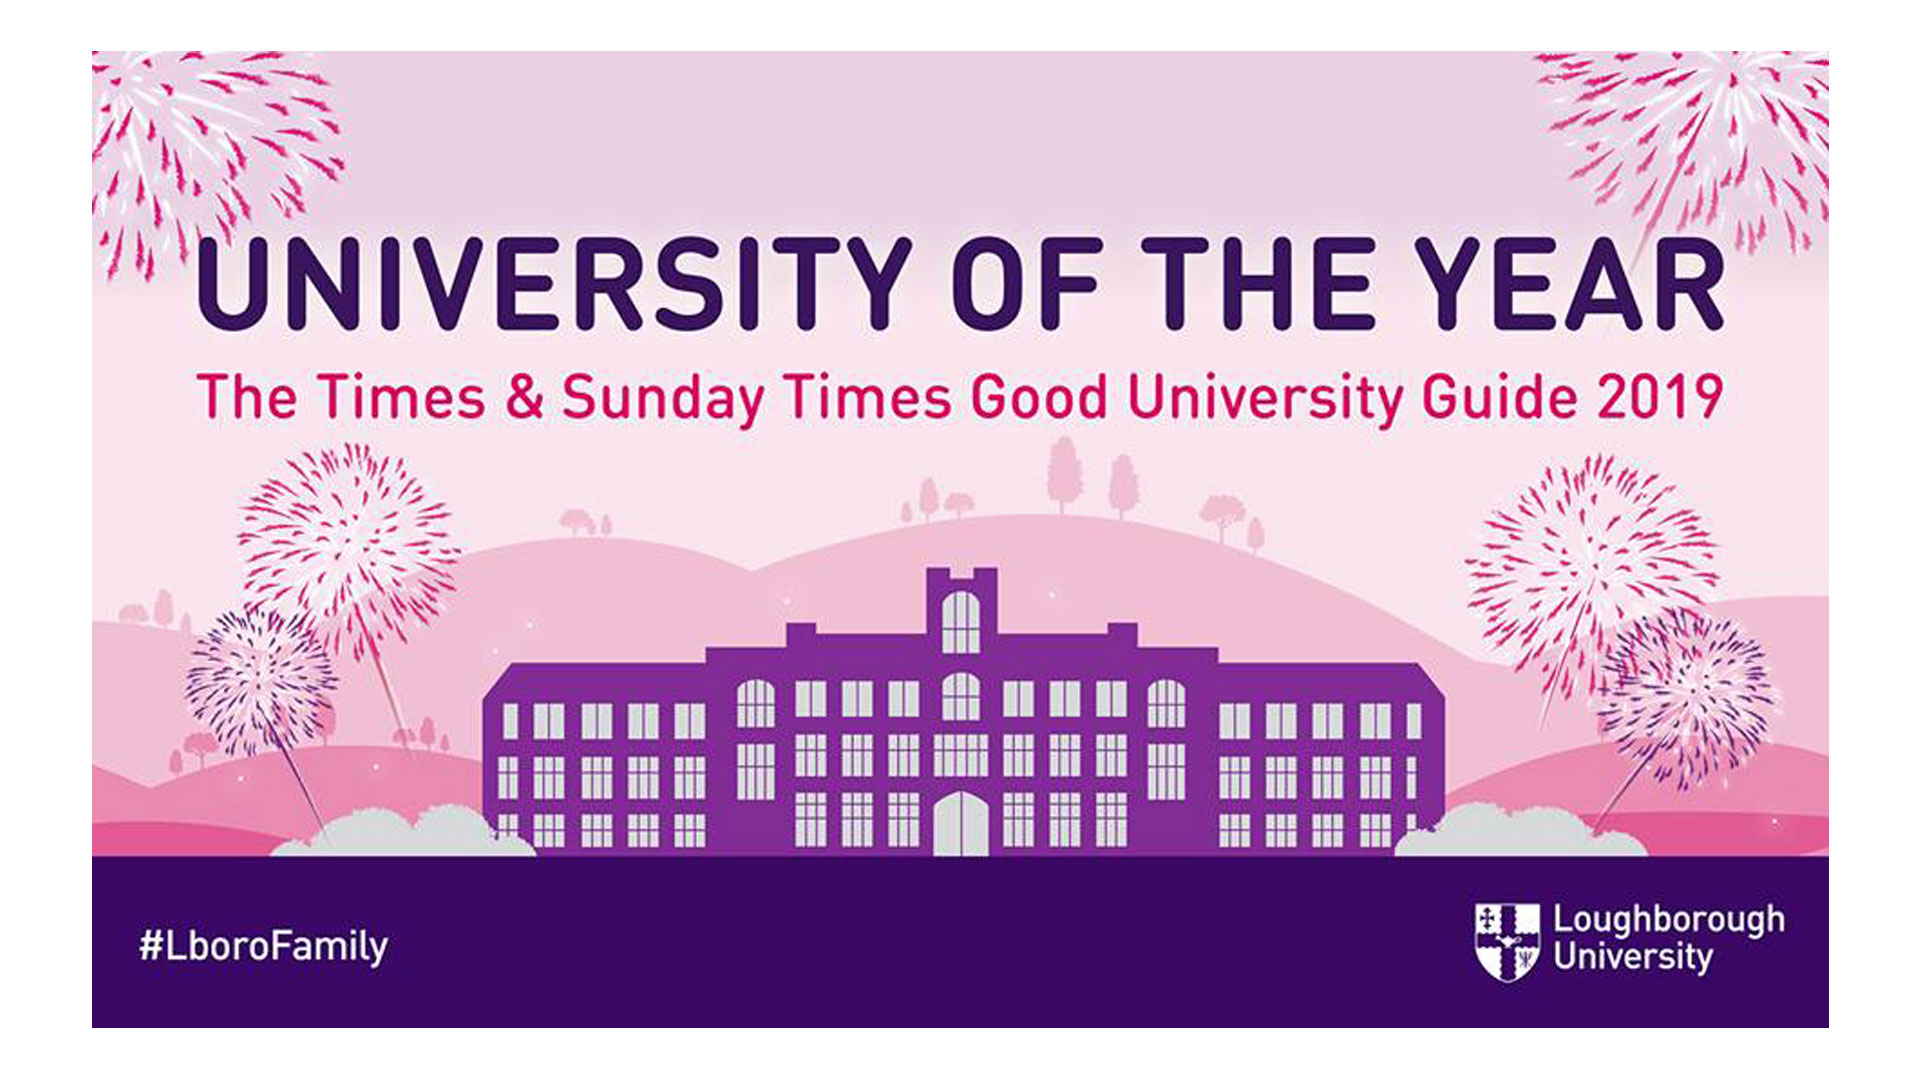 Loughborough University crowned University of the Year by The Times and Sunday Times